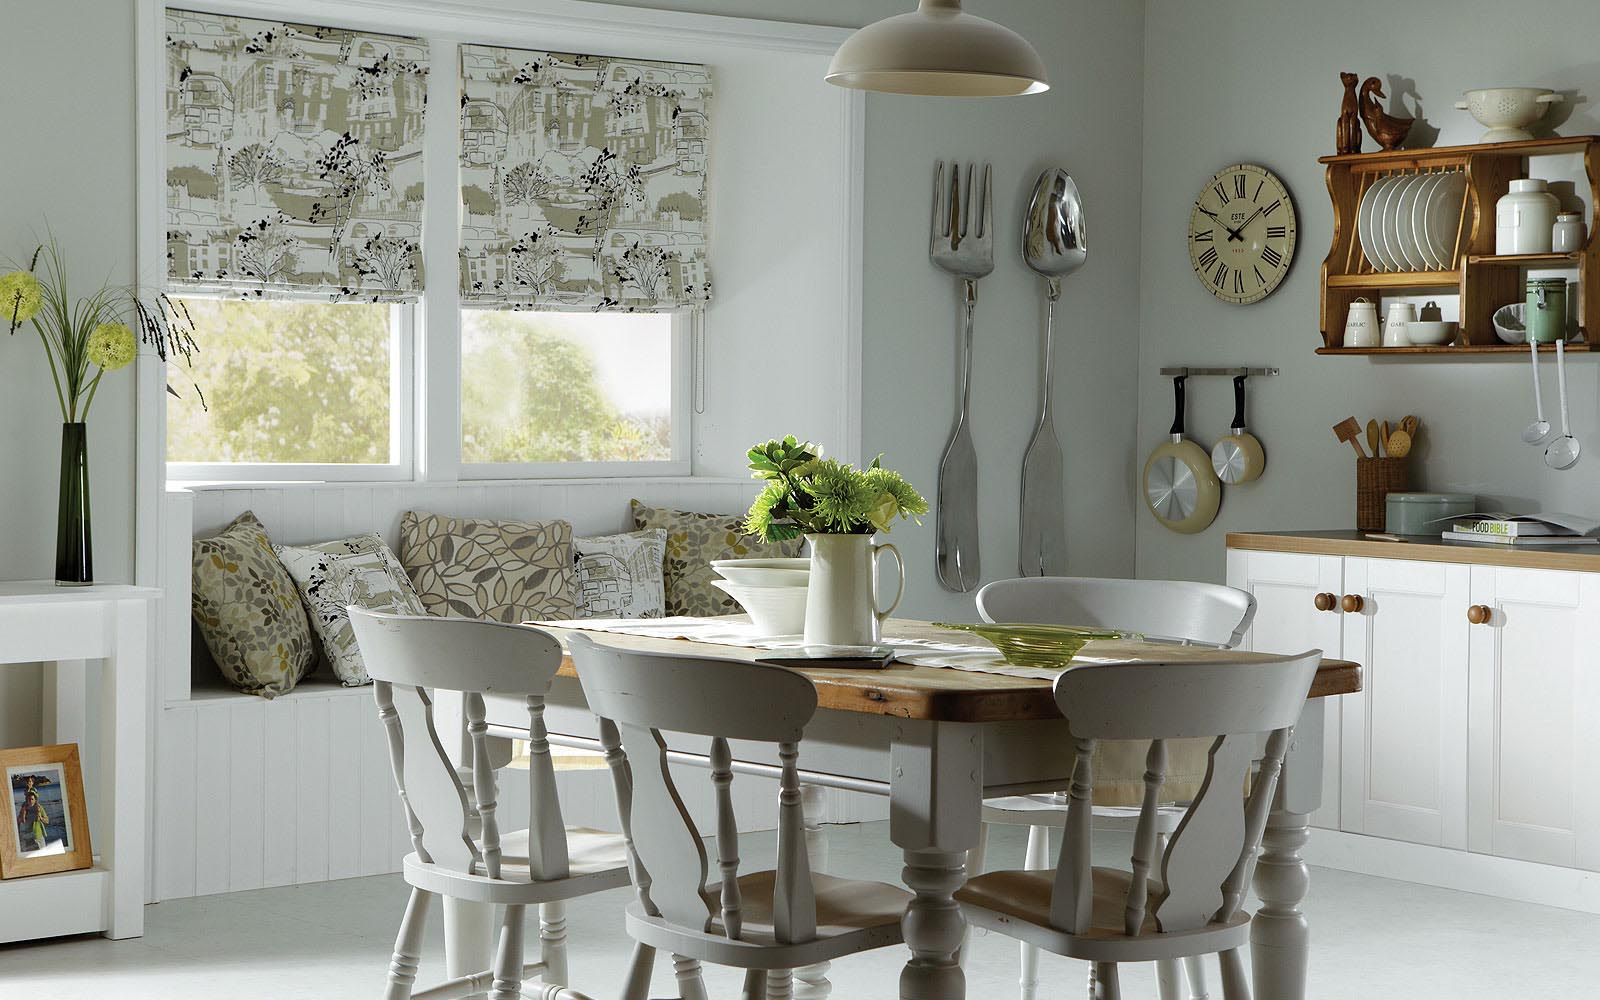 Kitchen Blinds Unlined Roman Blind Image Kitchen Blinds From